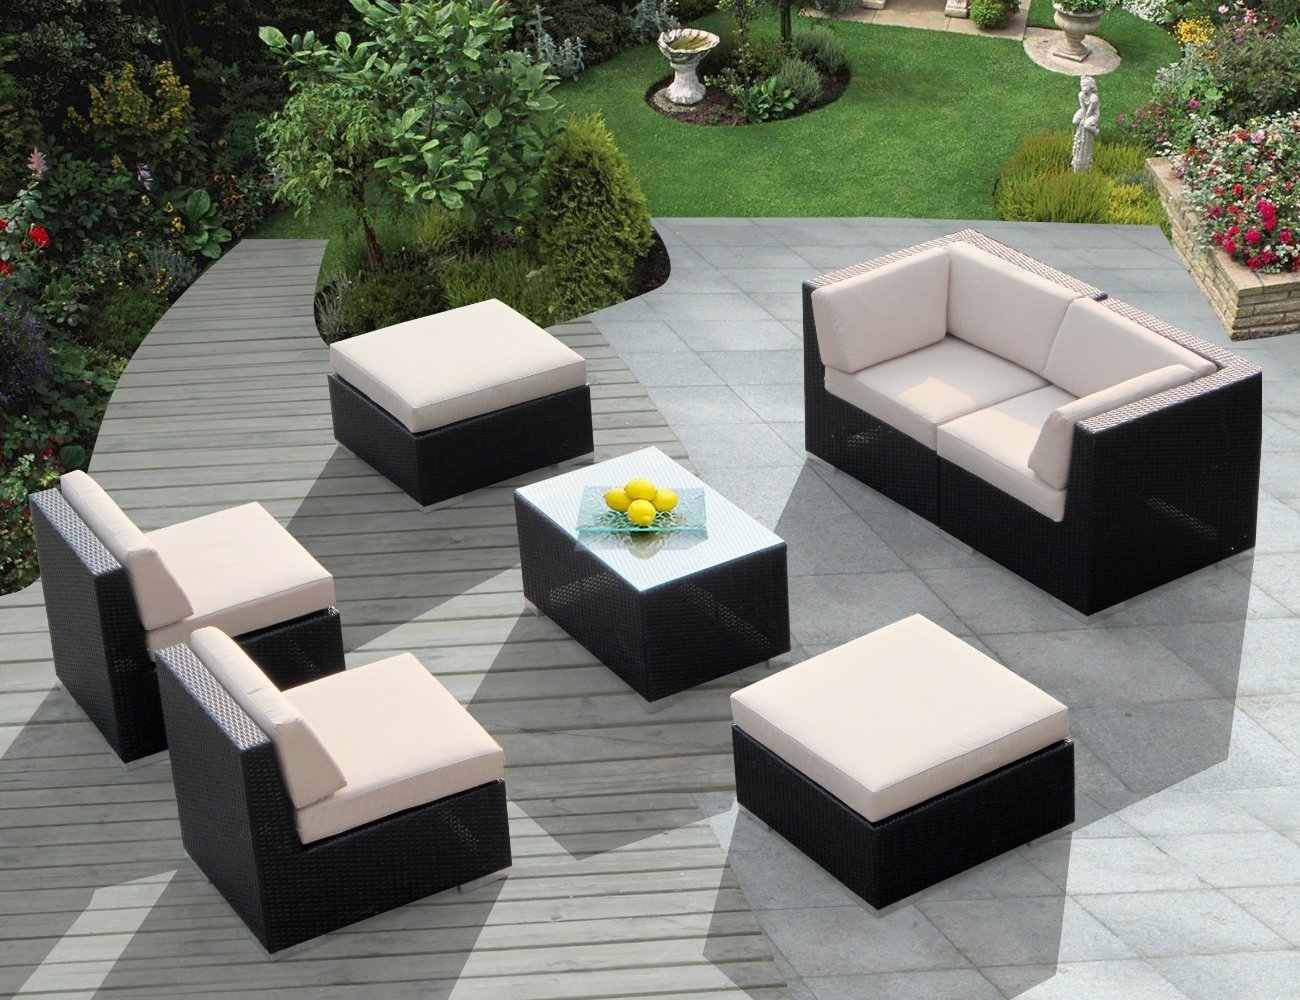 Patio Decor Outdoor Wicker Patio Furniture Sofa Seater Luxury Throughout Outdoor Sofas And Chairs (Image 15 of 15)